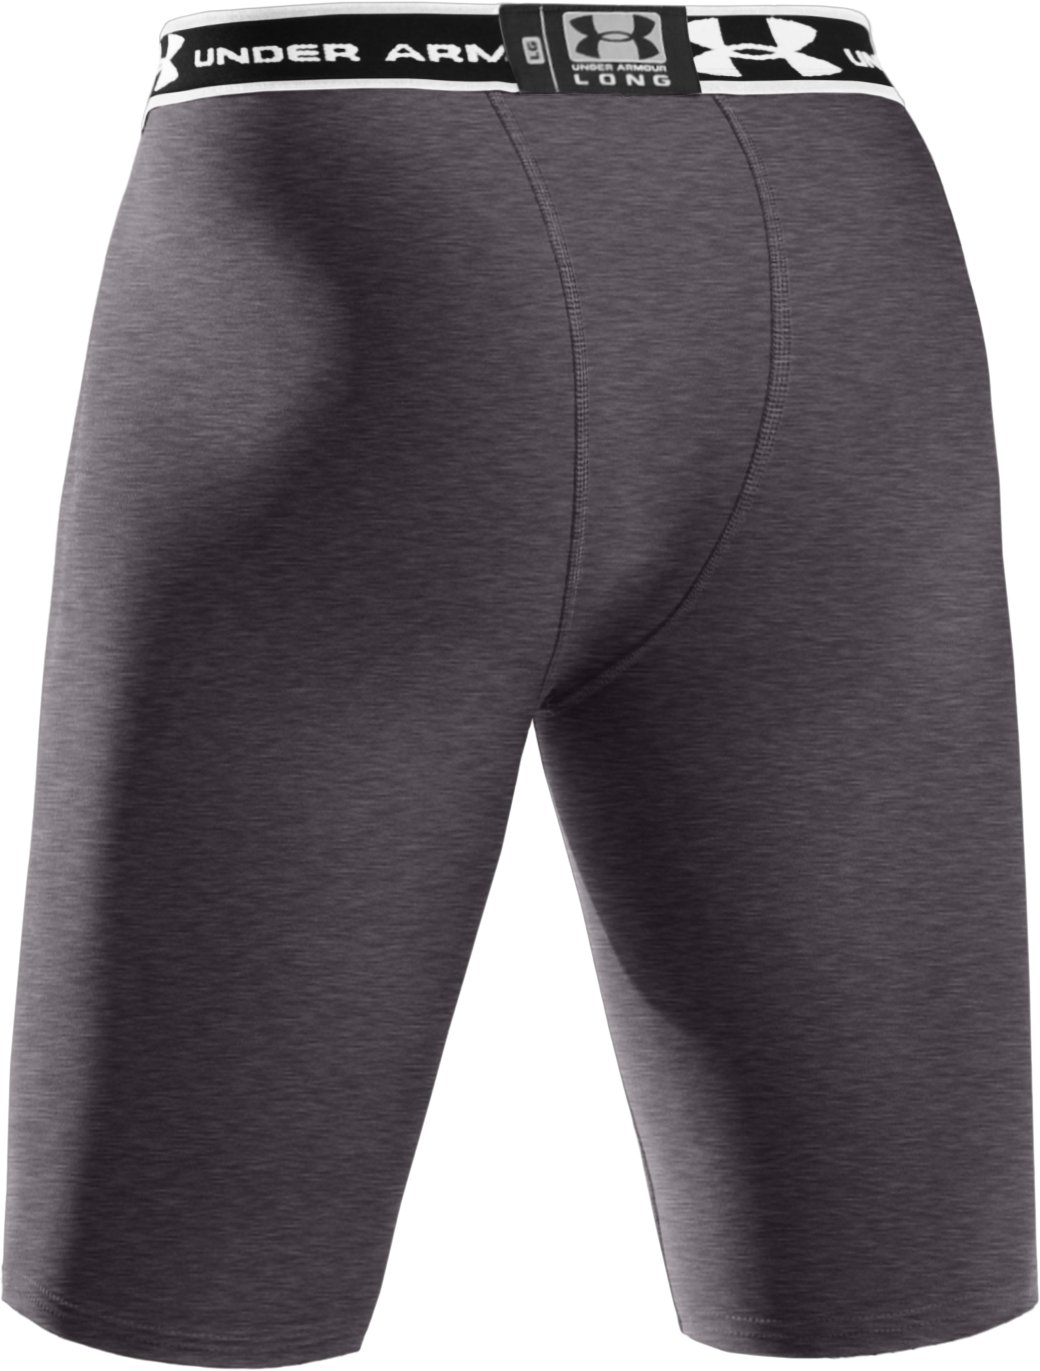 "Men's HeatGear® Compression 9"" Shorts, Carbon Heather"